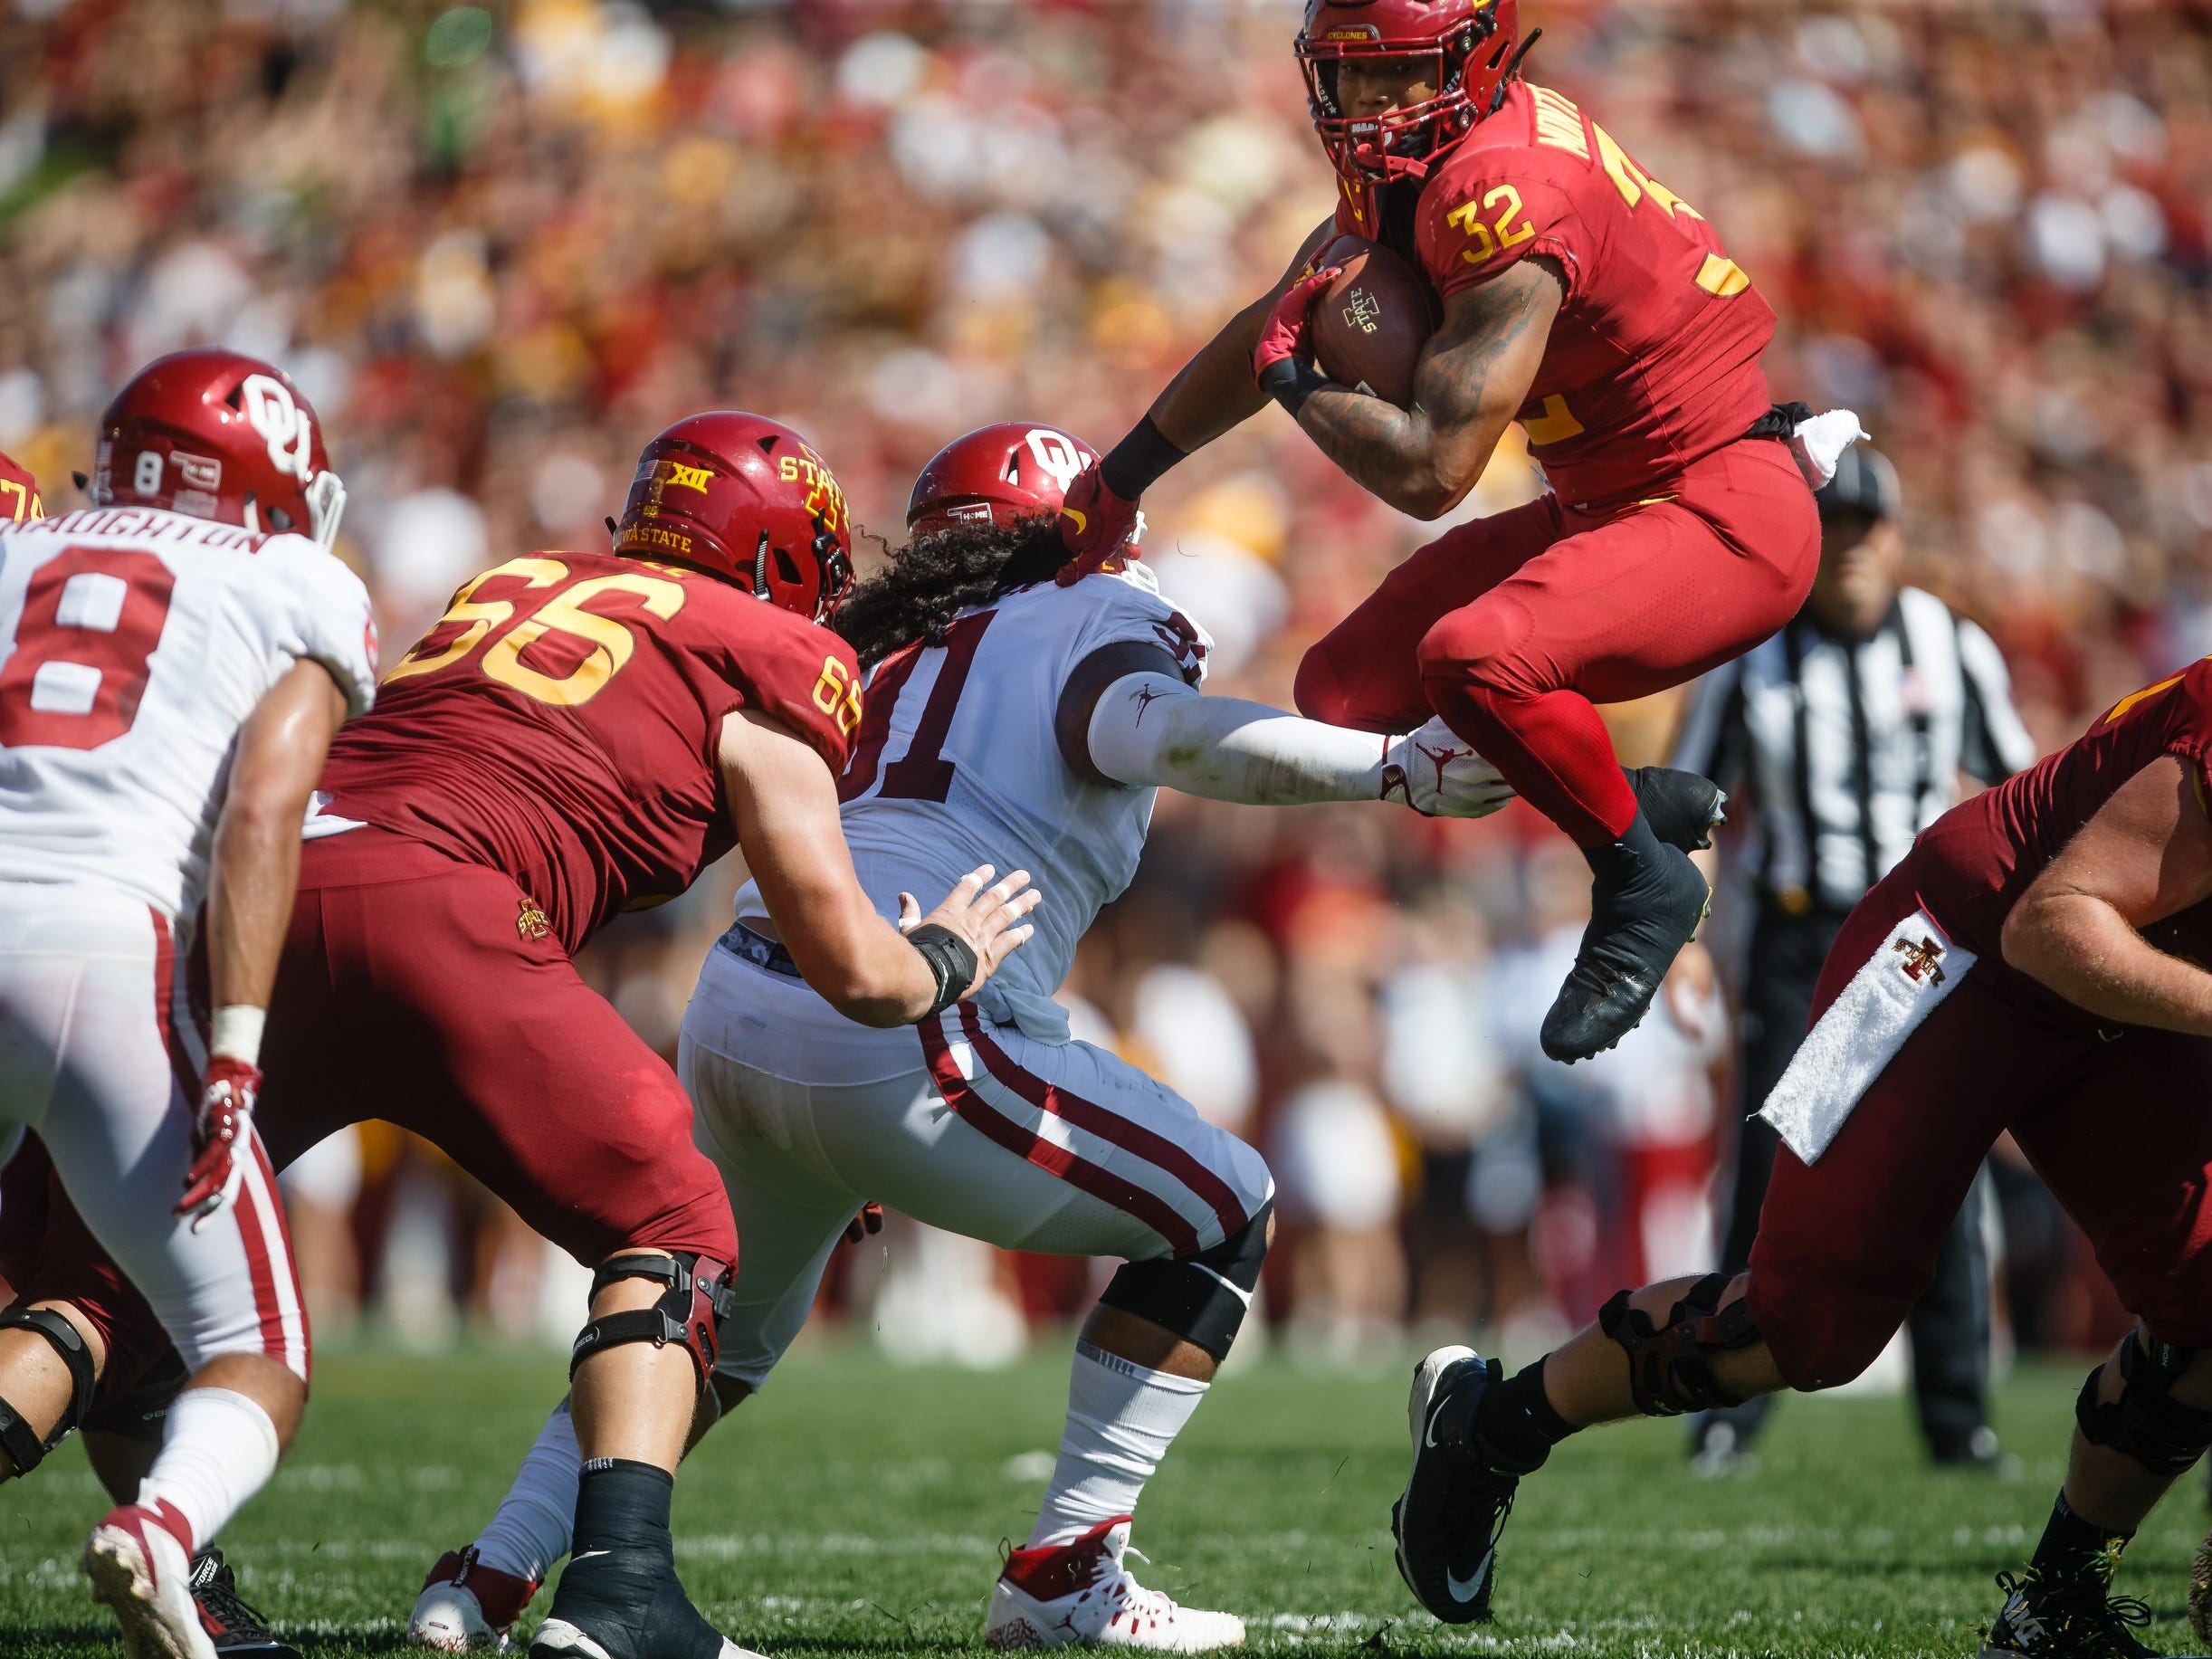 Iowa State's David Montgomery (32) jumps over the line during their football game against Oklahoma at Jack Trice Stadium on Saturday, Sept. 15, 2018 in Ames. Oklahoma takes a 24-10 lead into halftime.